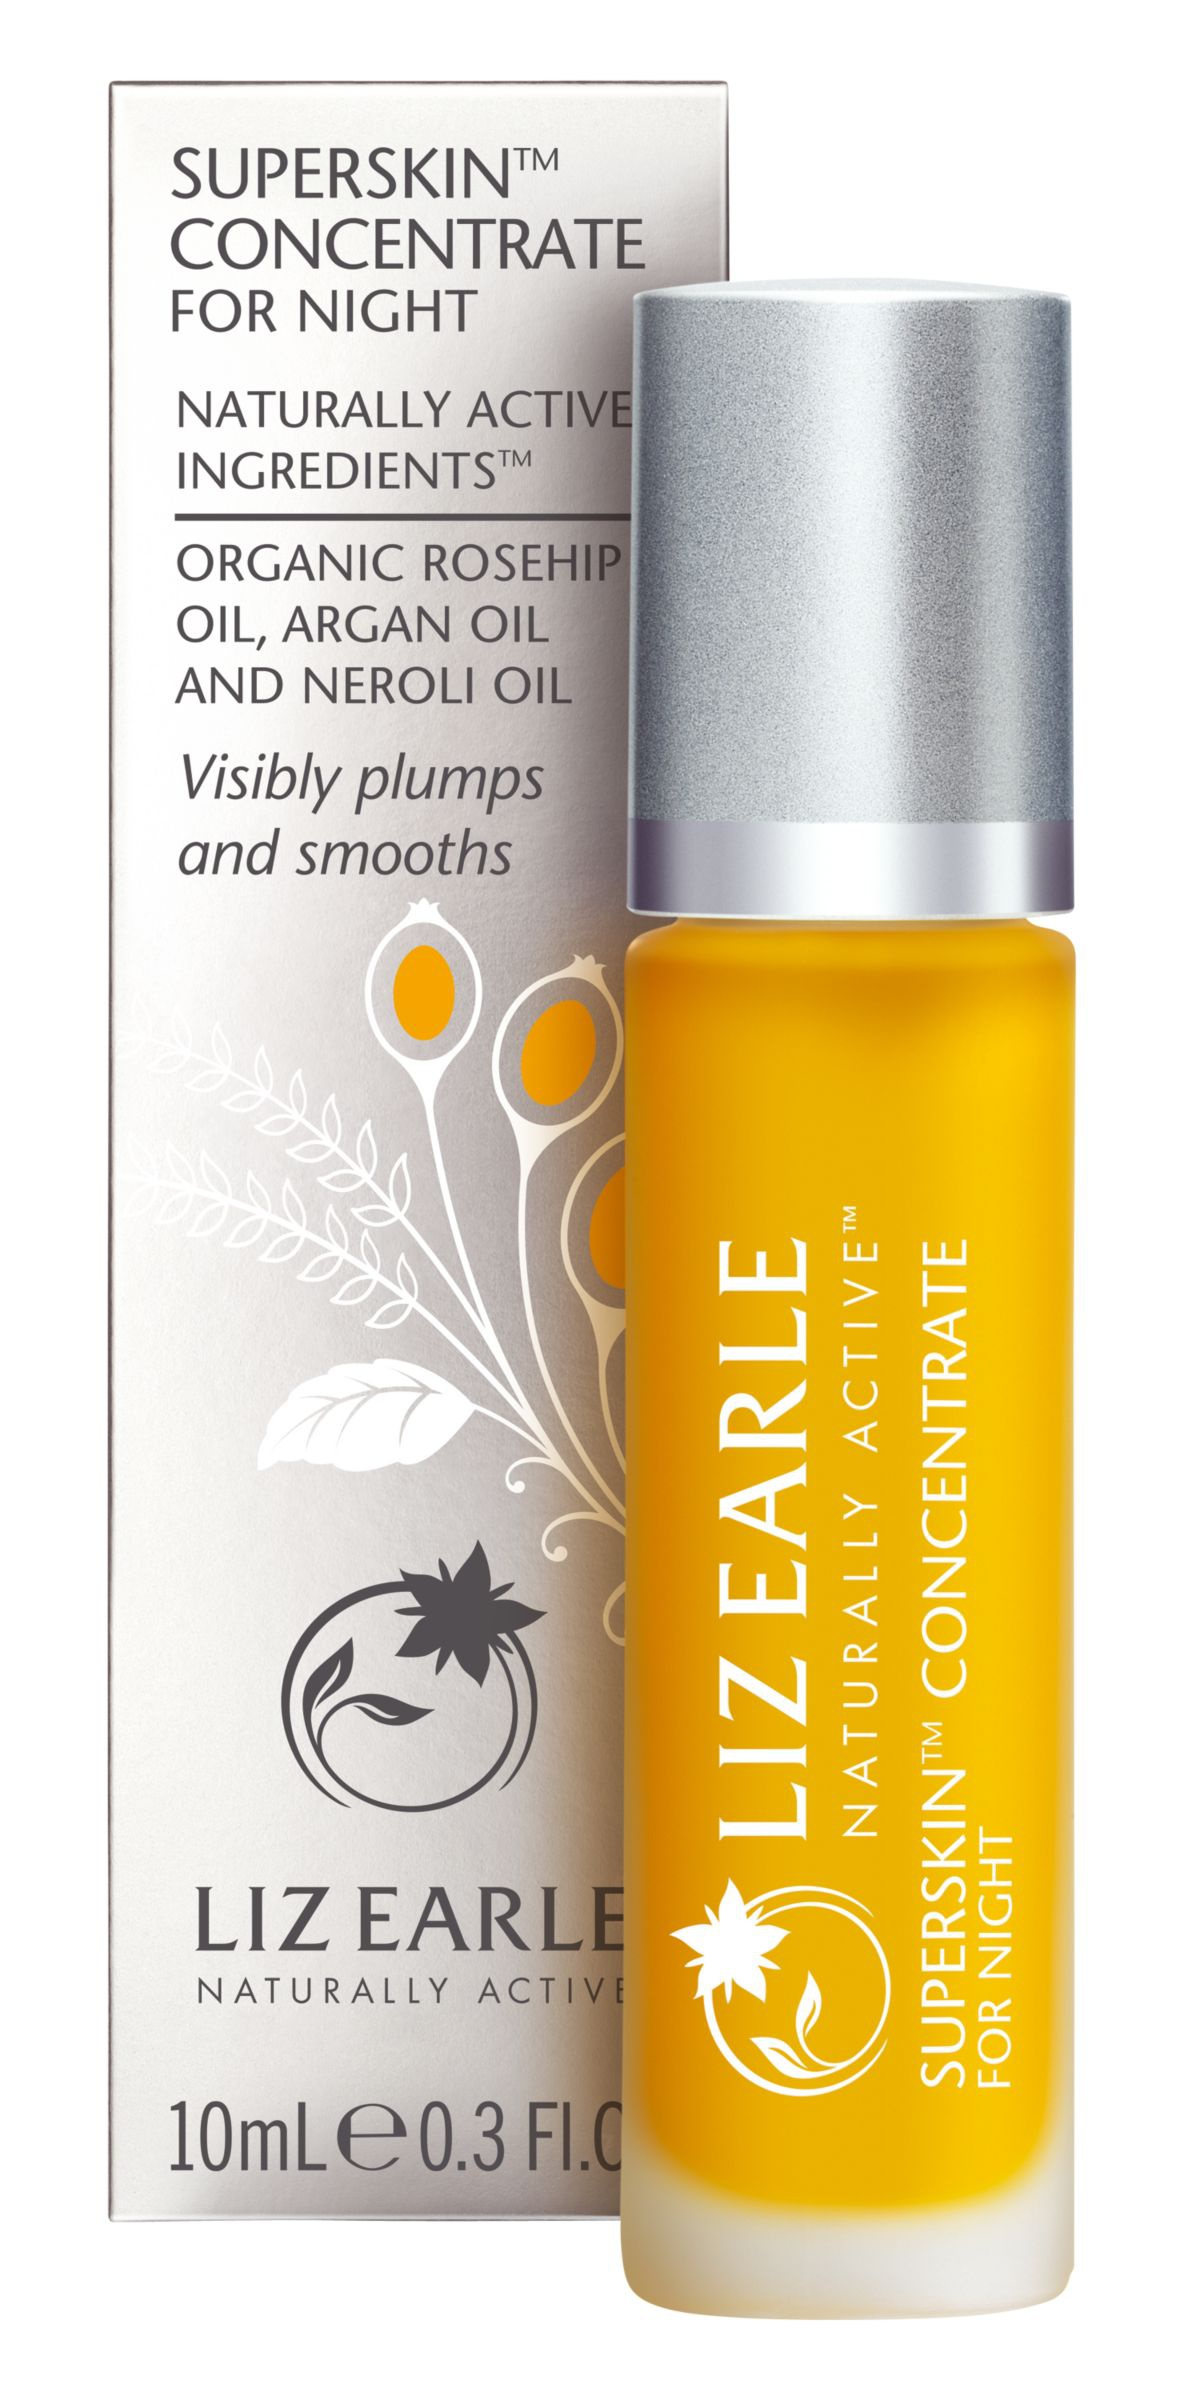 Liz Earle Super Skin Concentrate For Night (Naturally Active)